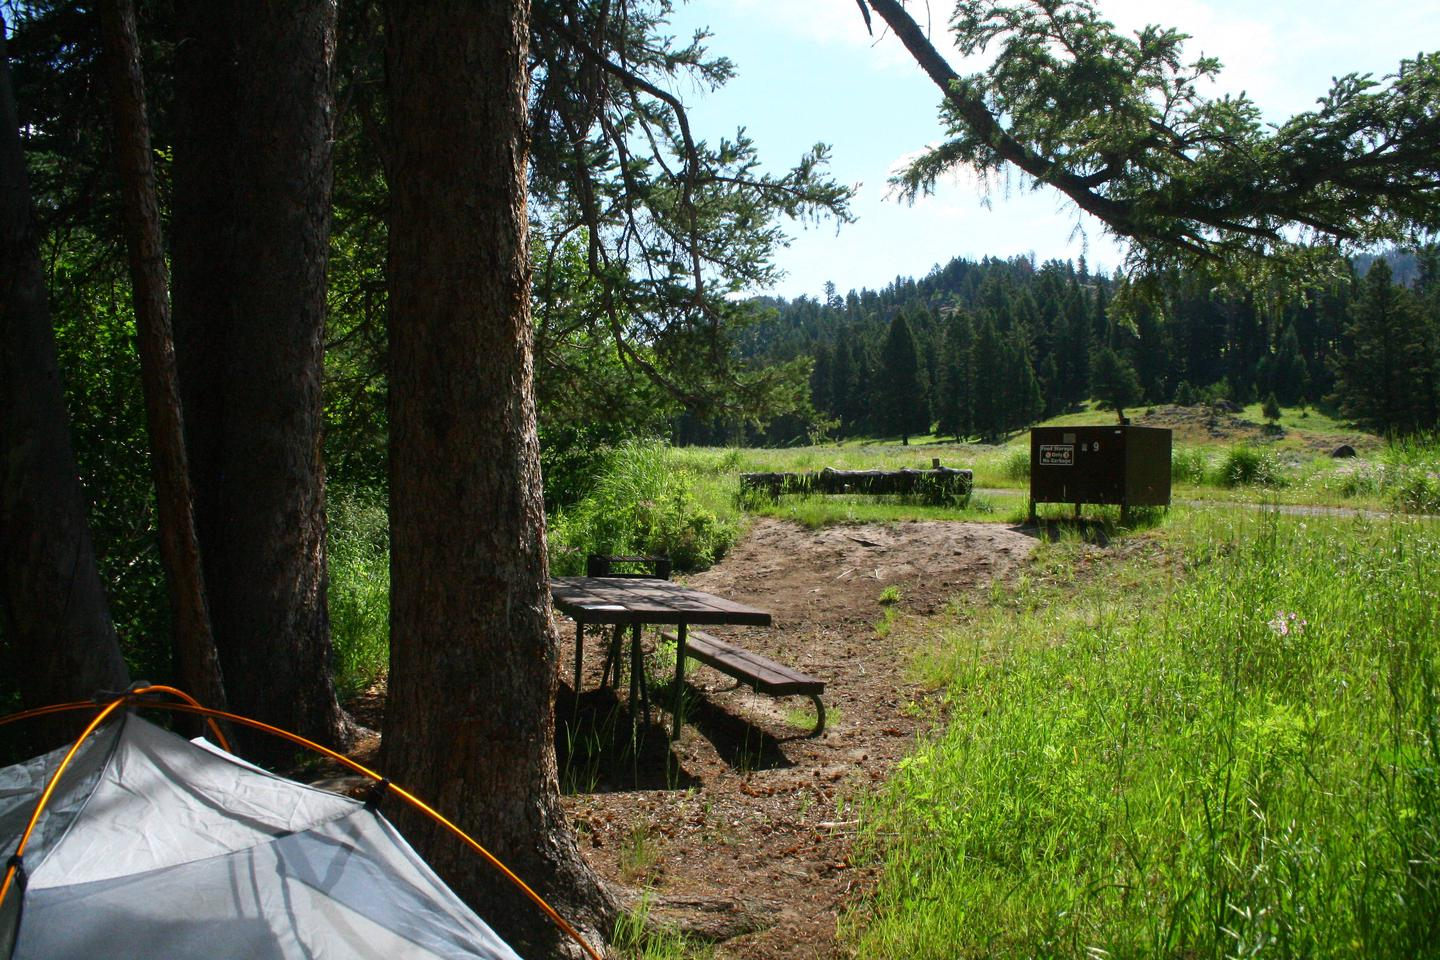 Slough Creek Campground Site #9..bSlough Creek Campground Site #9